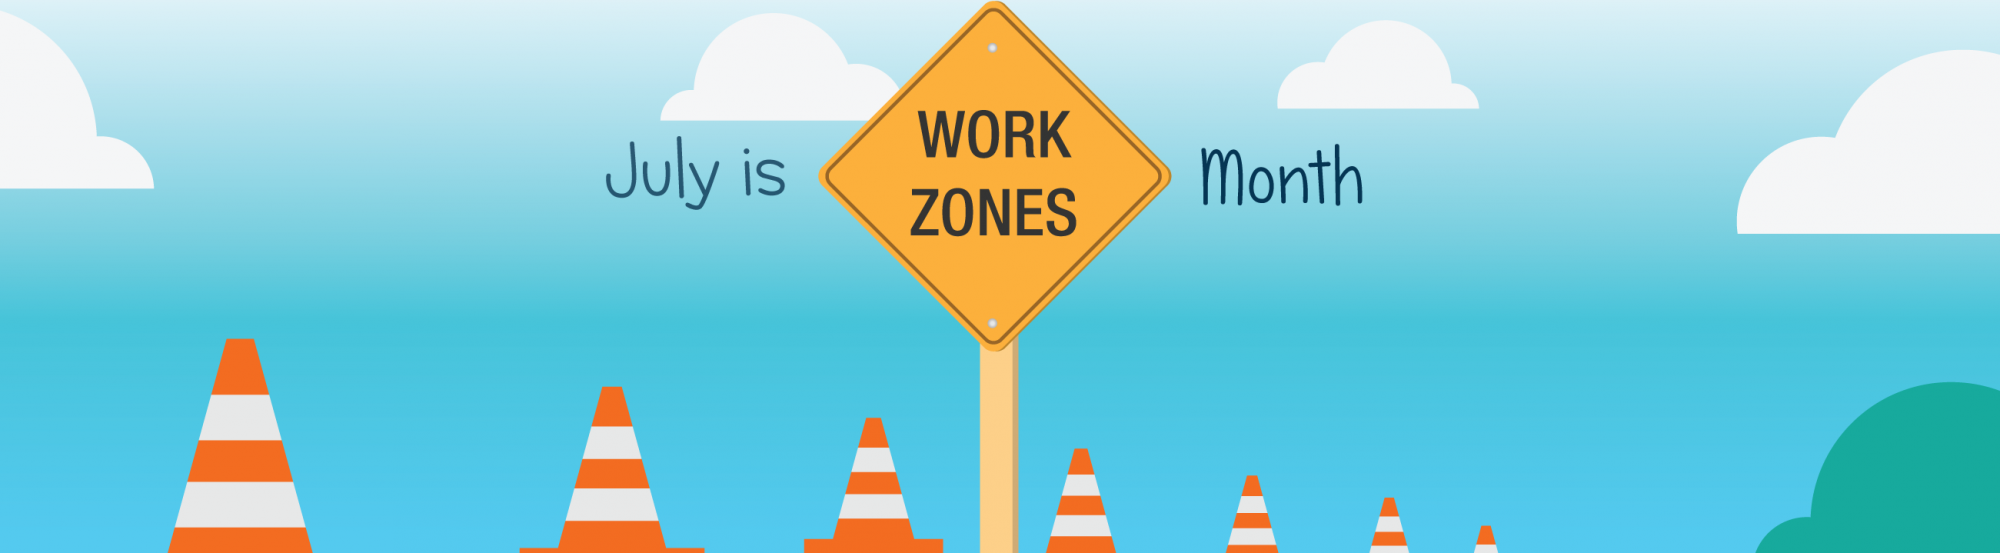 work zones website